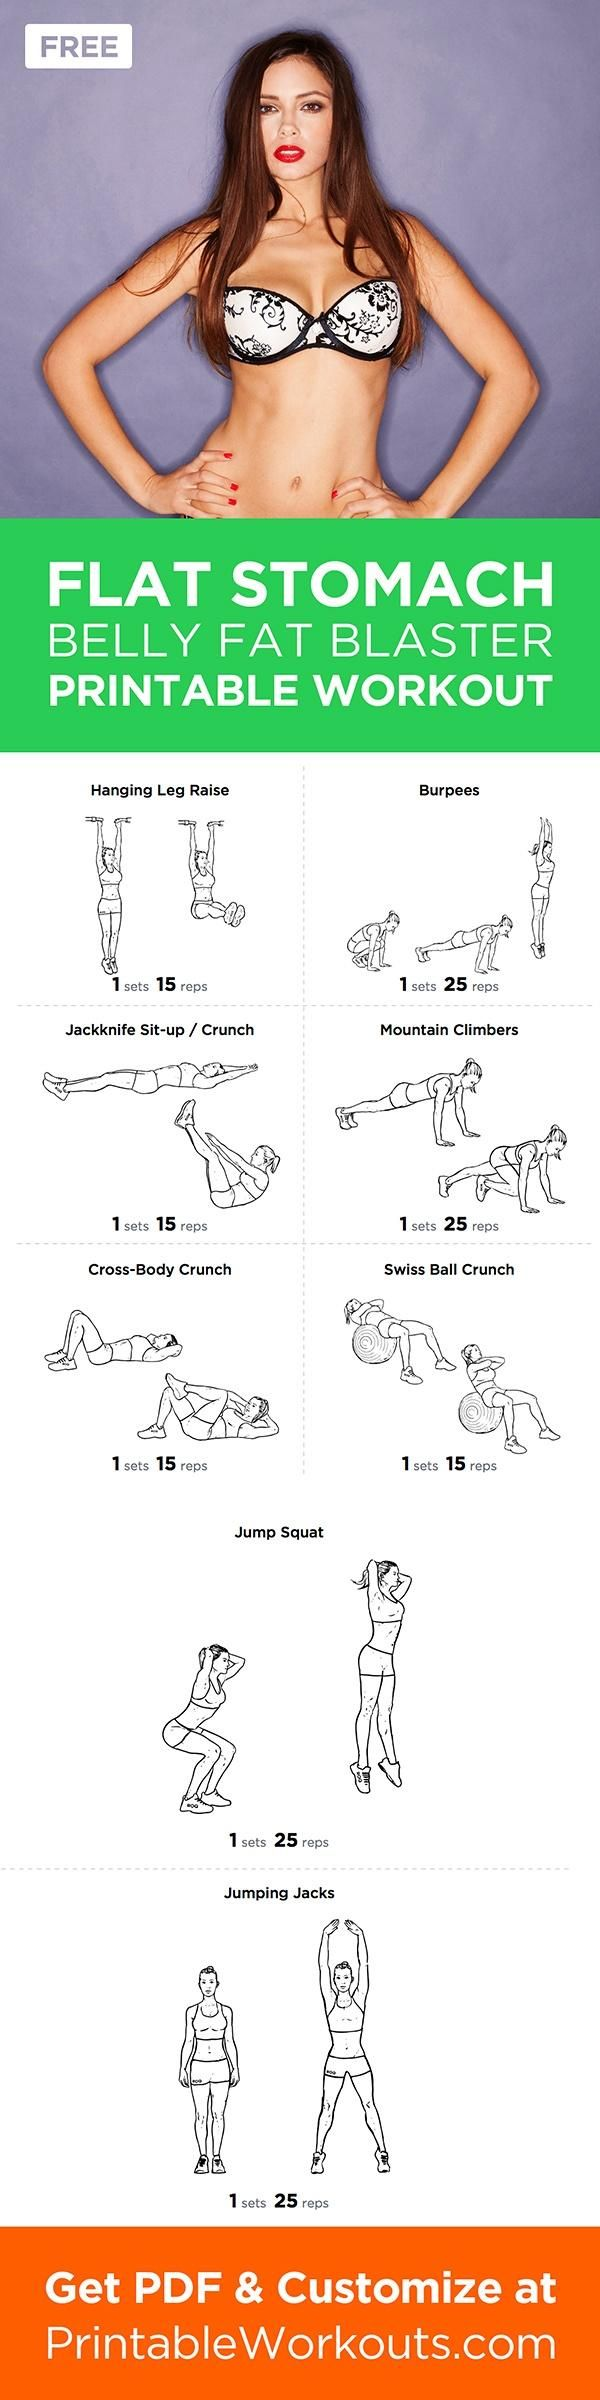 Flat Stomach Workout. Not that I will ever be able to get defined abs... :(